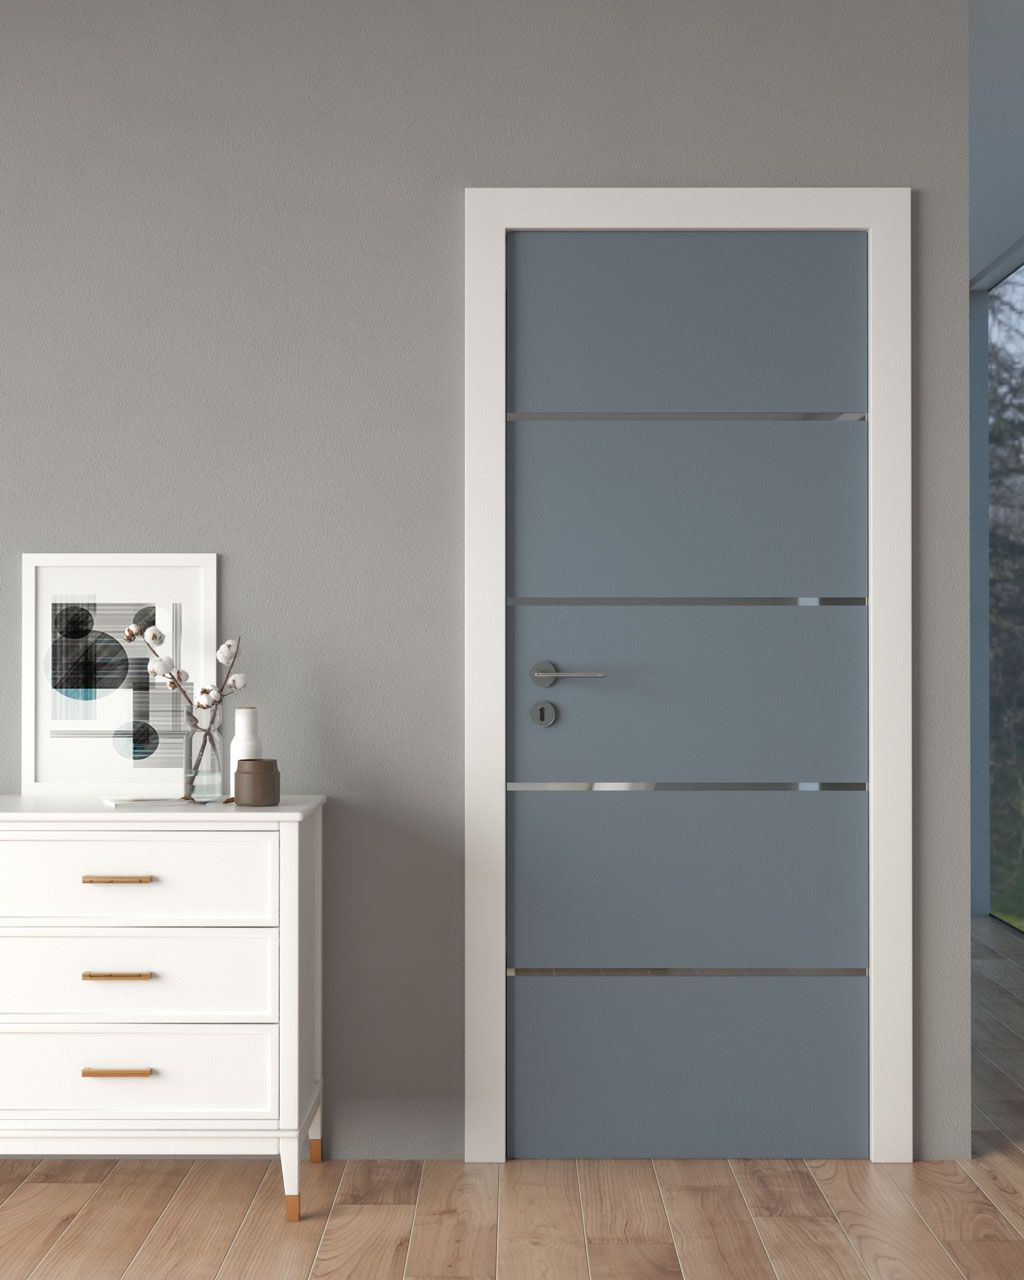 Dusty blue door with gray wall